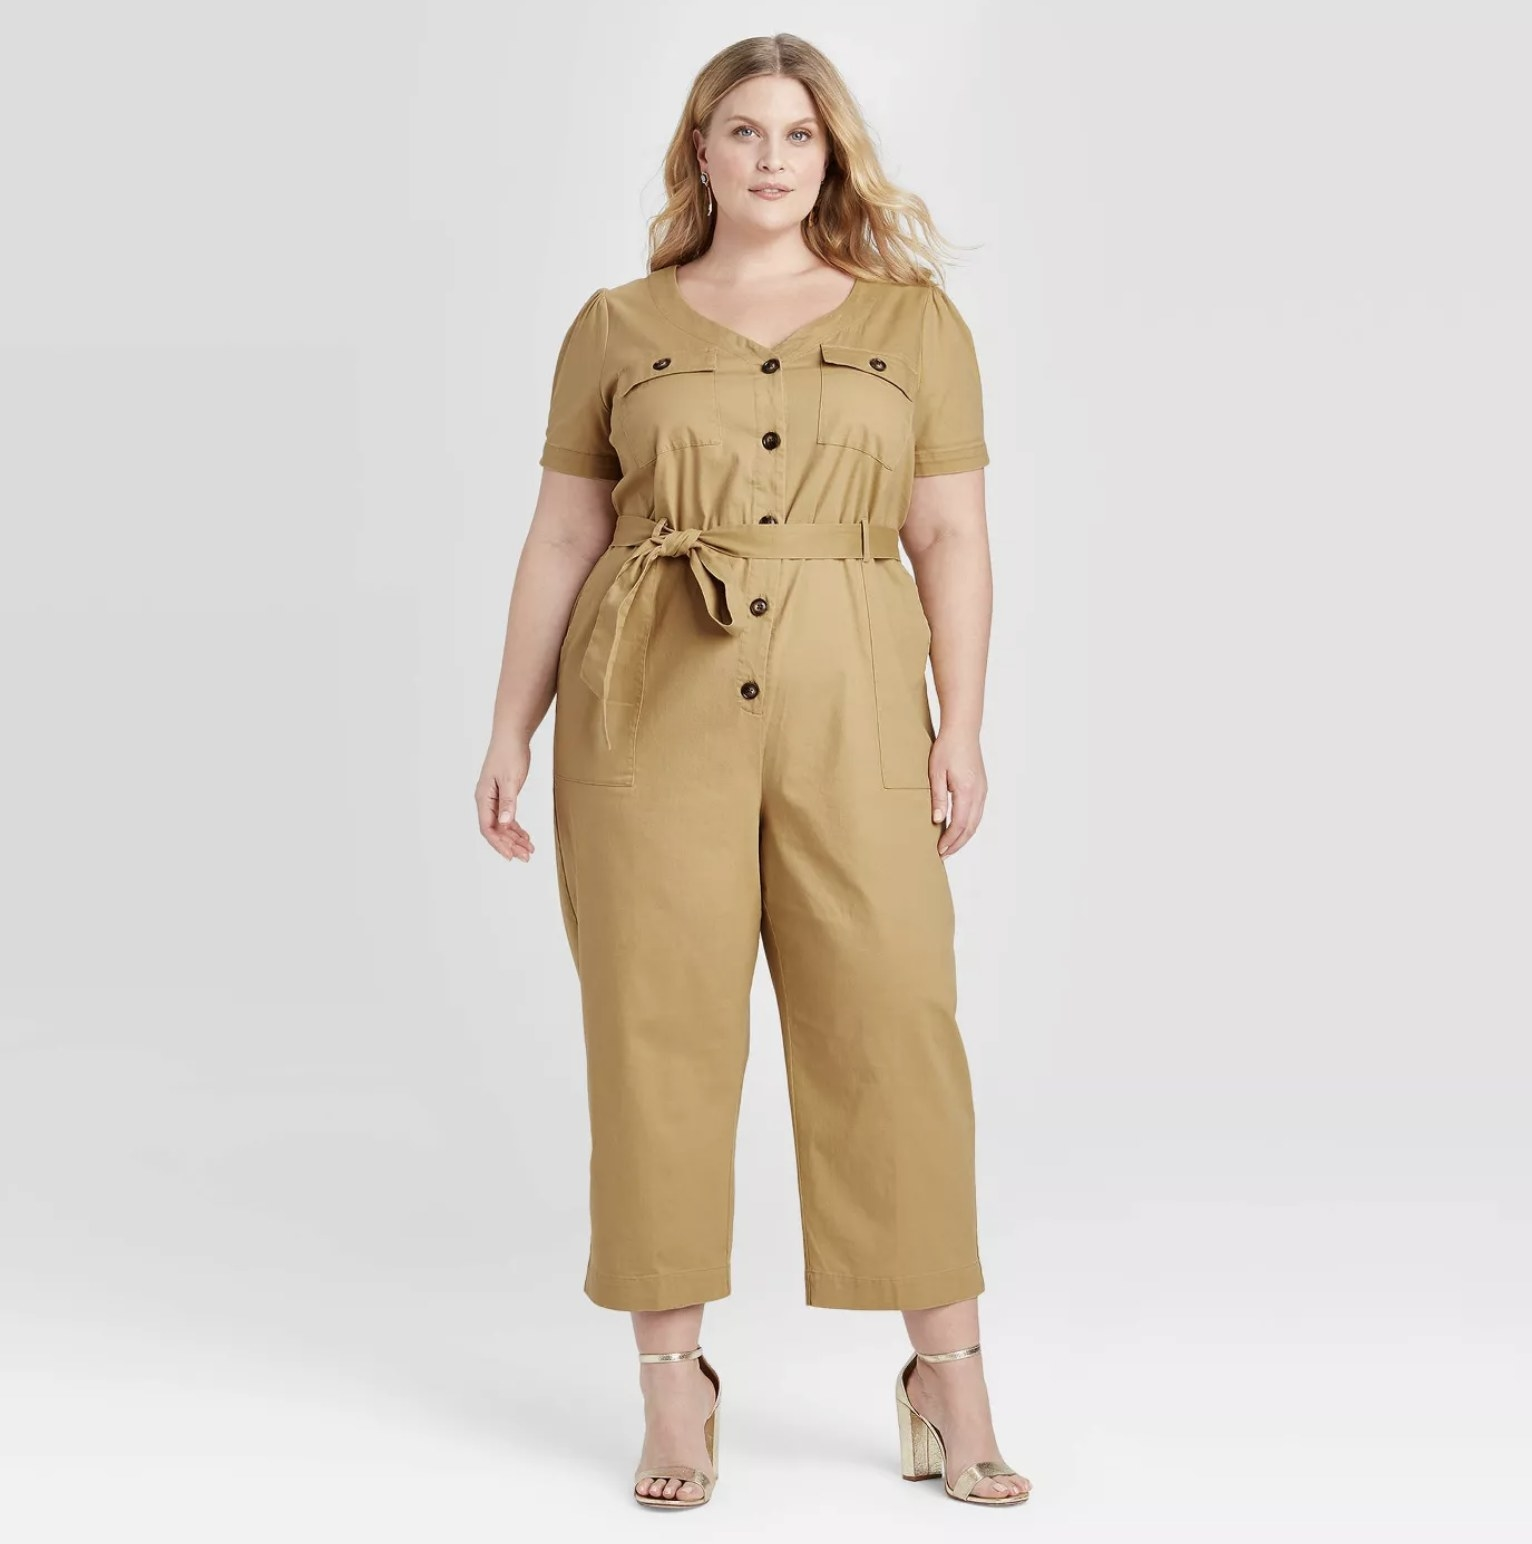 model wearing tie waist, button-up utility jumpsuit